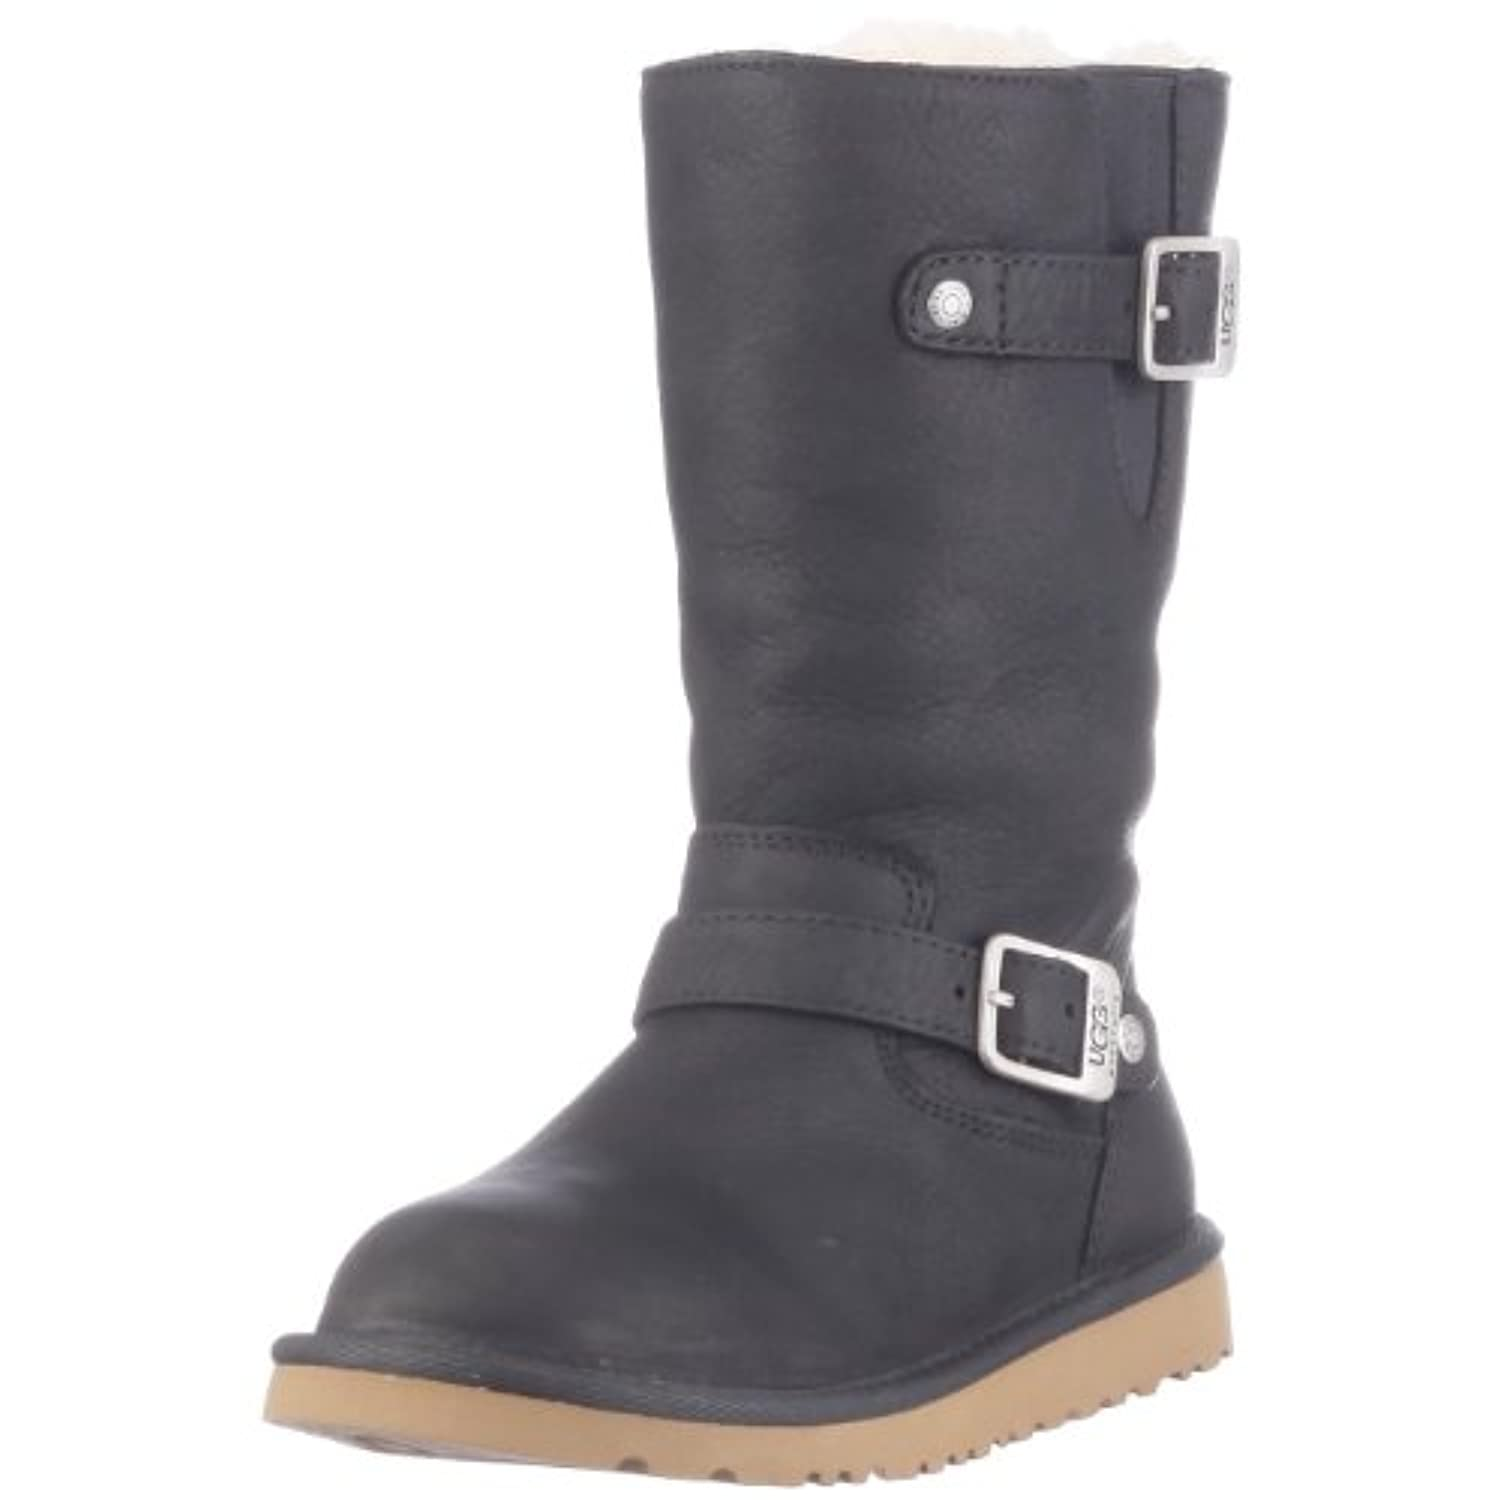 Ugg® Australia Kensington Boots Black 2 Child UK